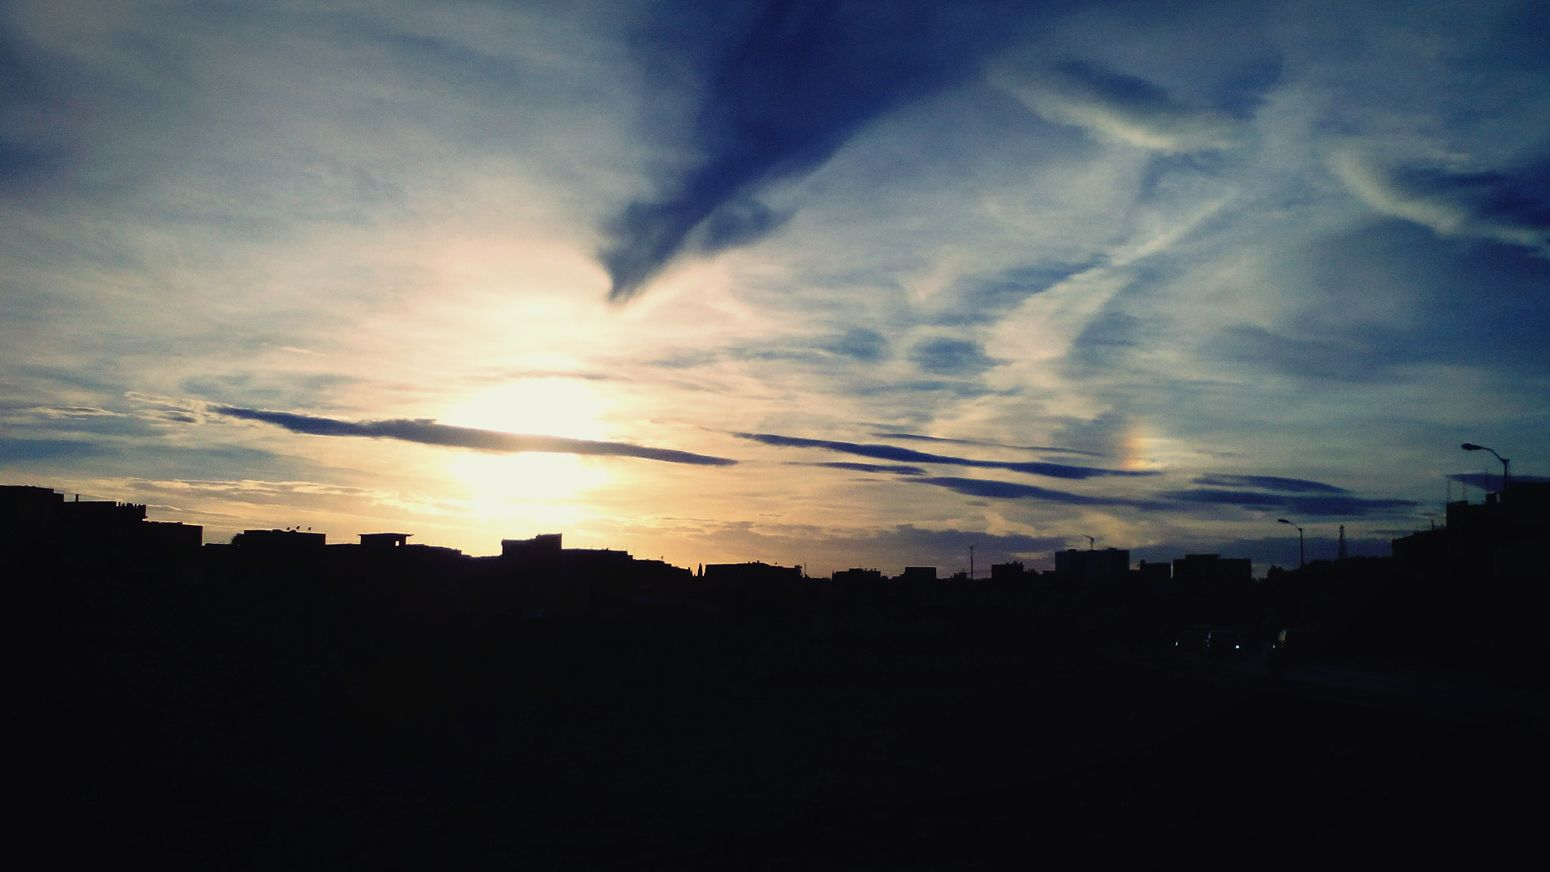 Landscape Colorful Sunset Clouds Clouds And Sky Cloudy Winter Relaxing Taking Photos Architecture Mywaytohome Shadows Silhouette